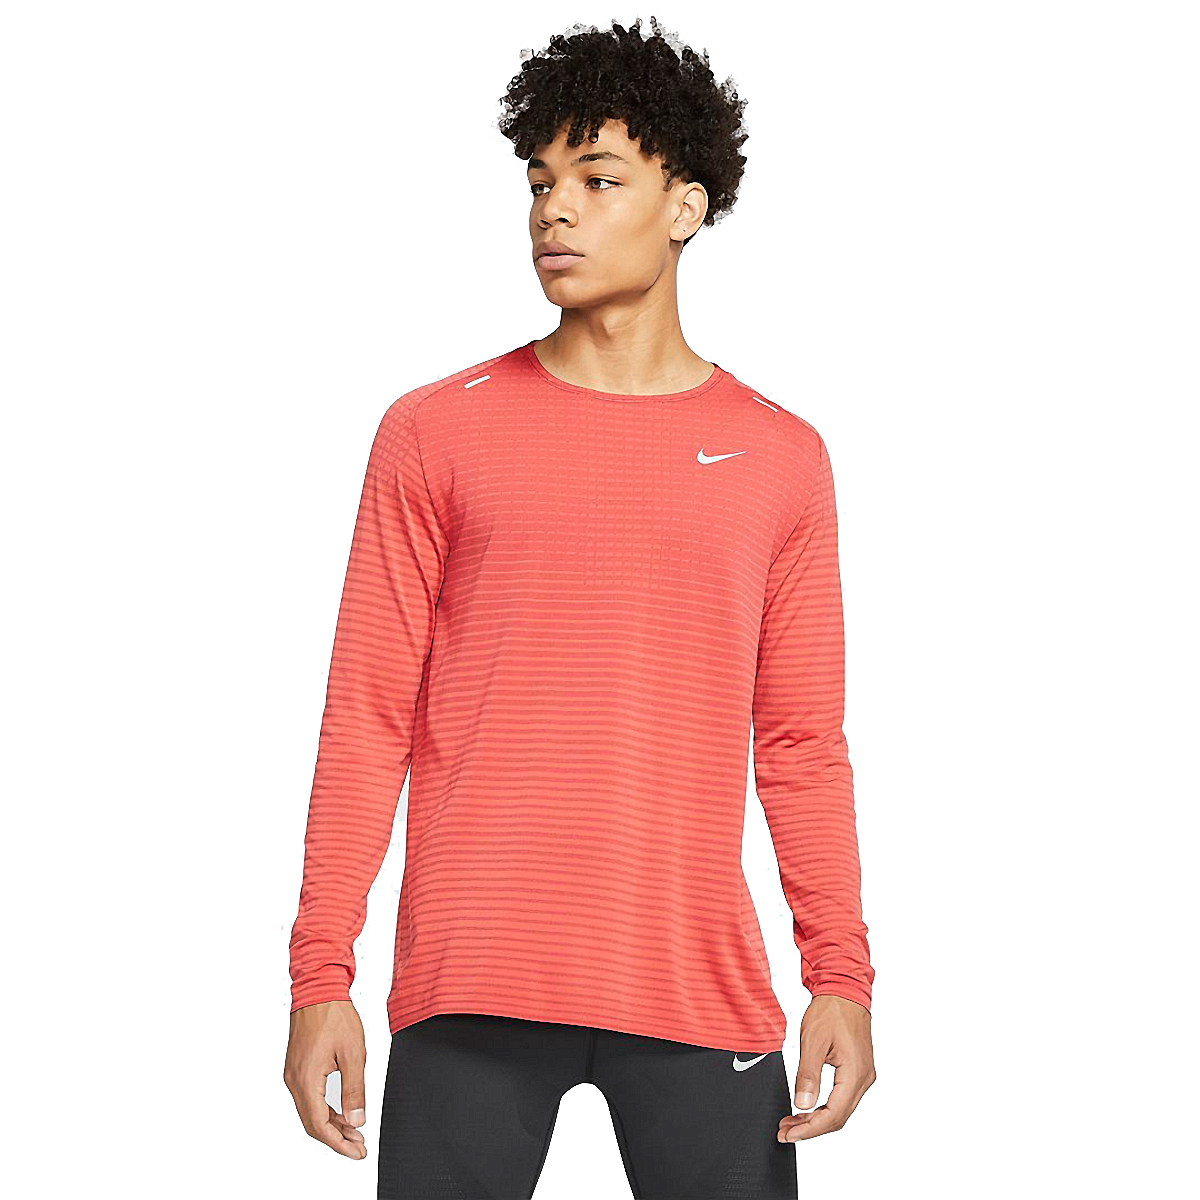 Men's Nike Techknit Ultra Long Sleeve - Color: Track Red/Noble Red - Size: S, Track Red/Noble Red, large, image 1